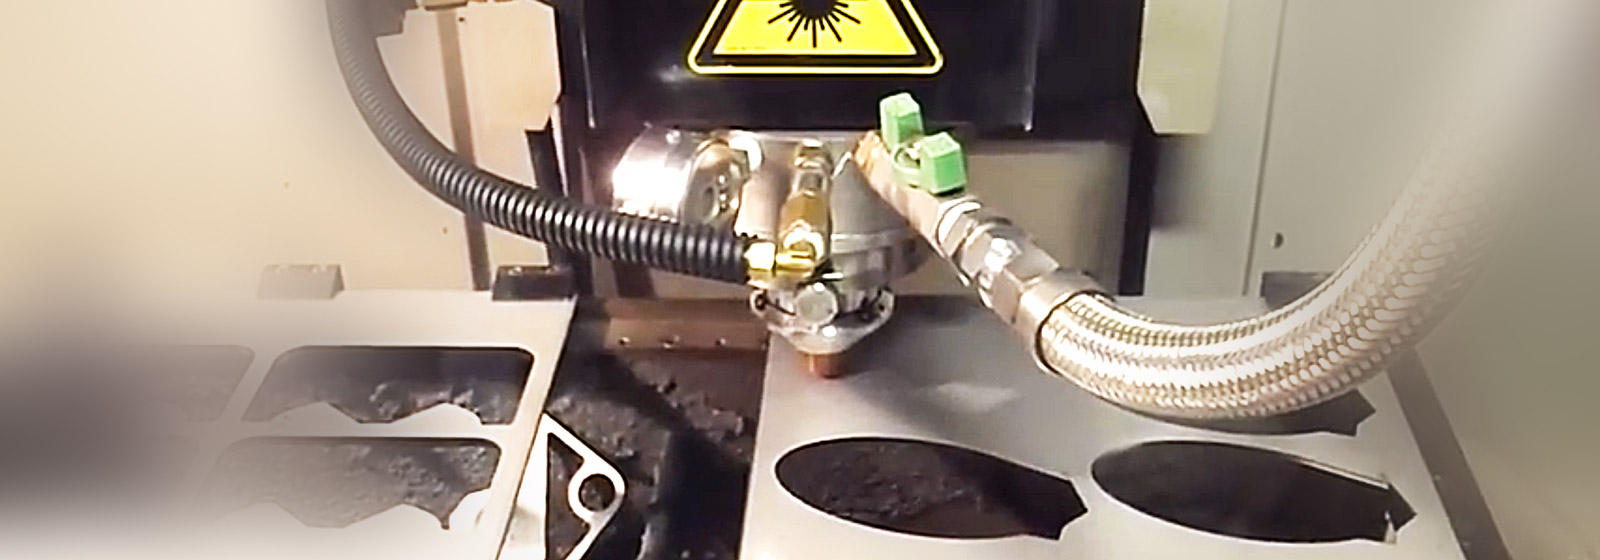 Nozzle of laser cutting machine